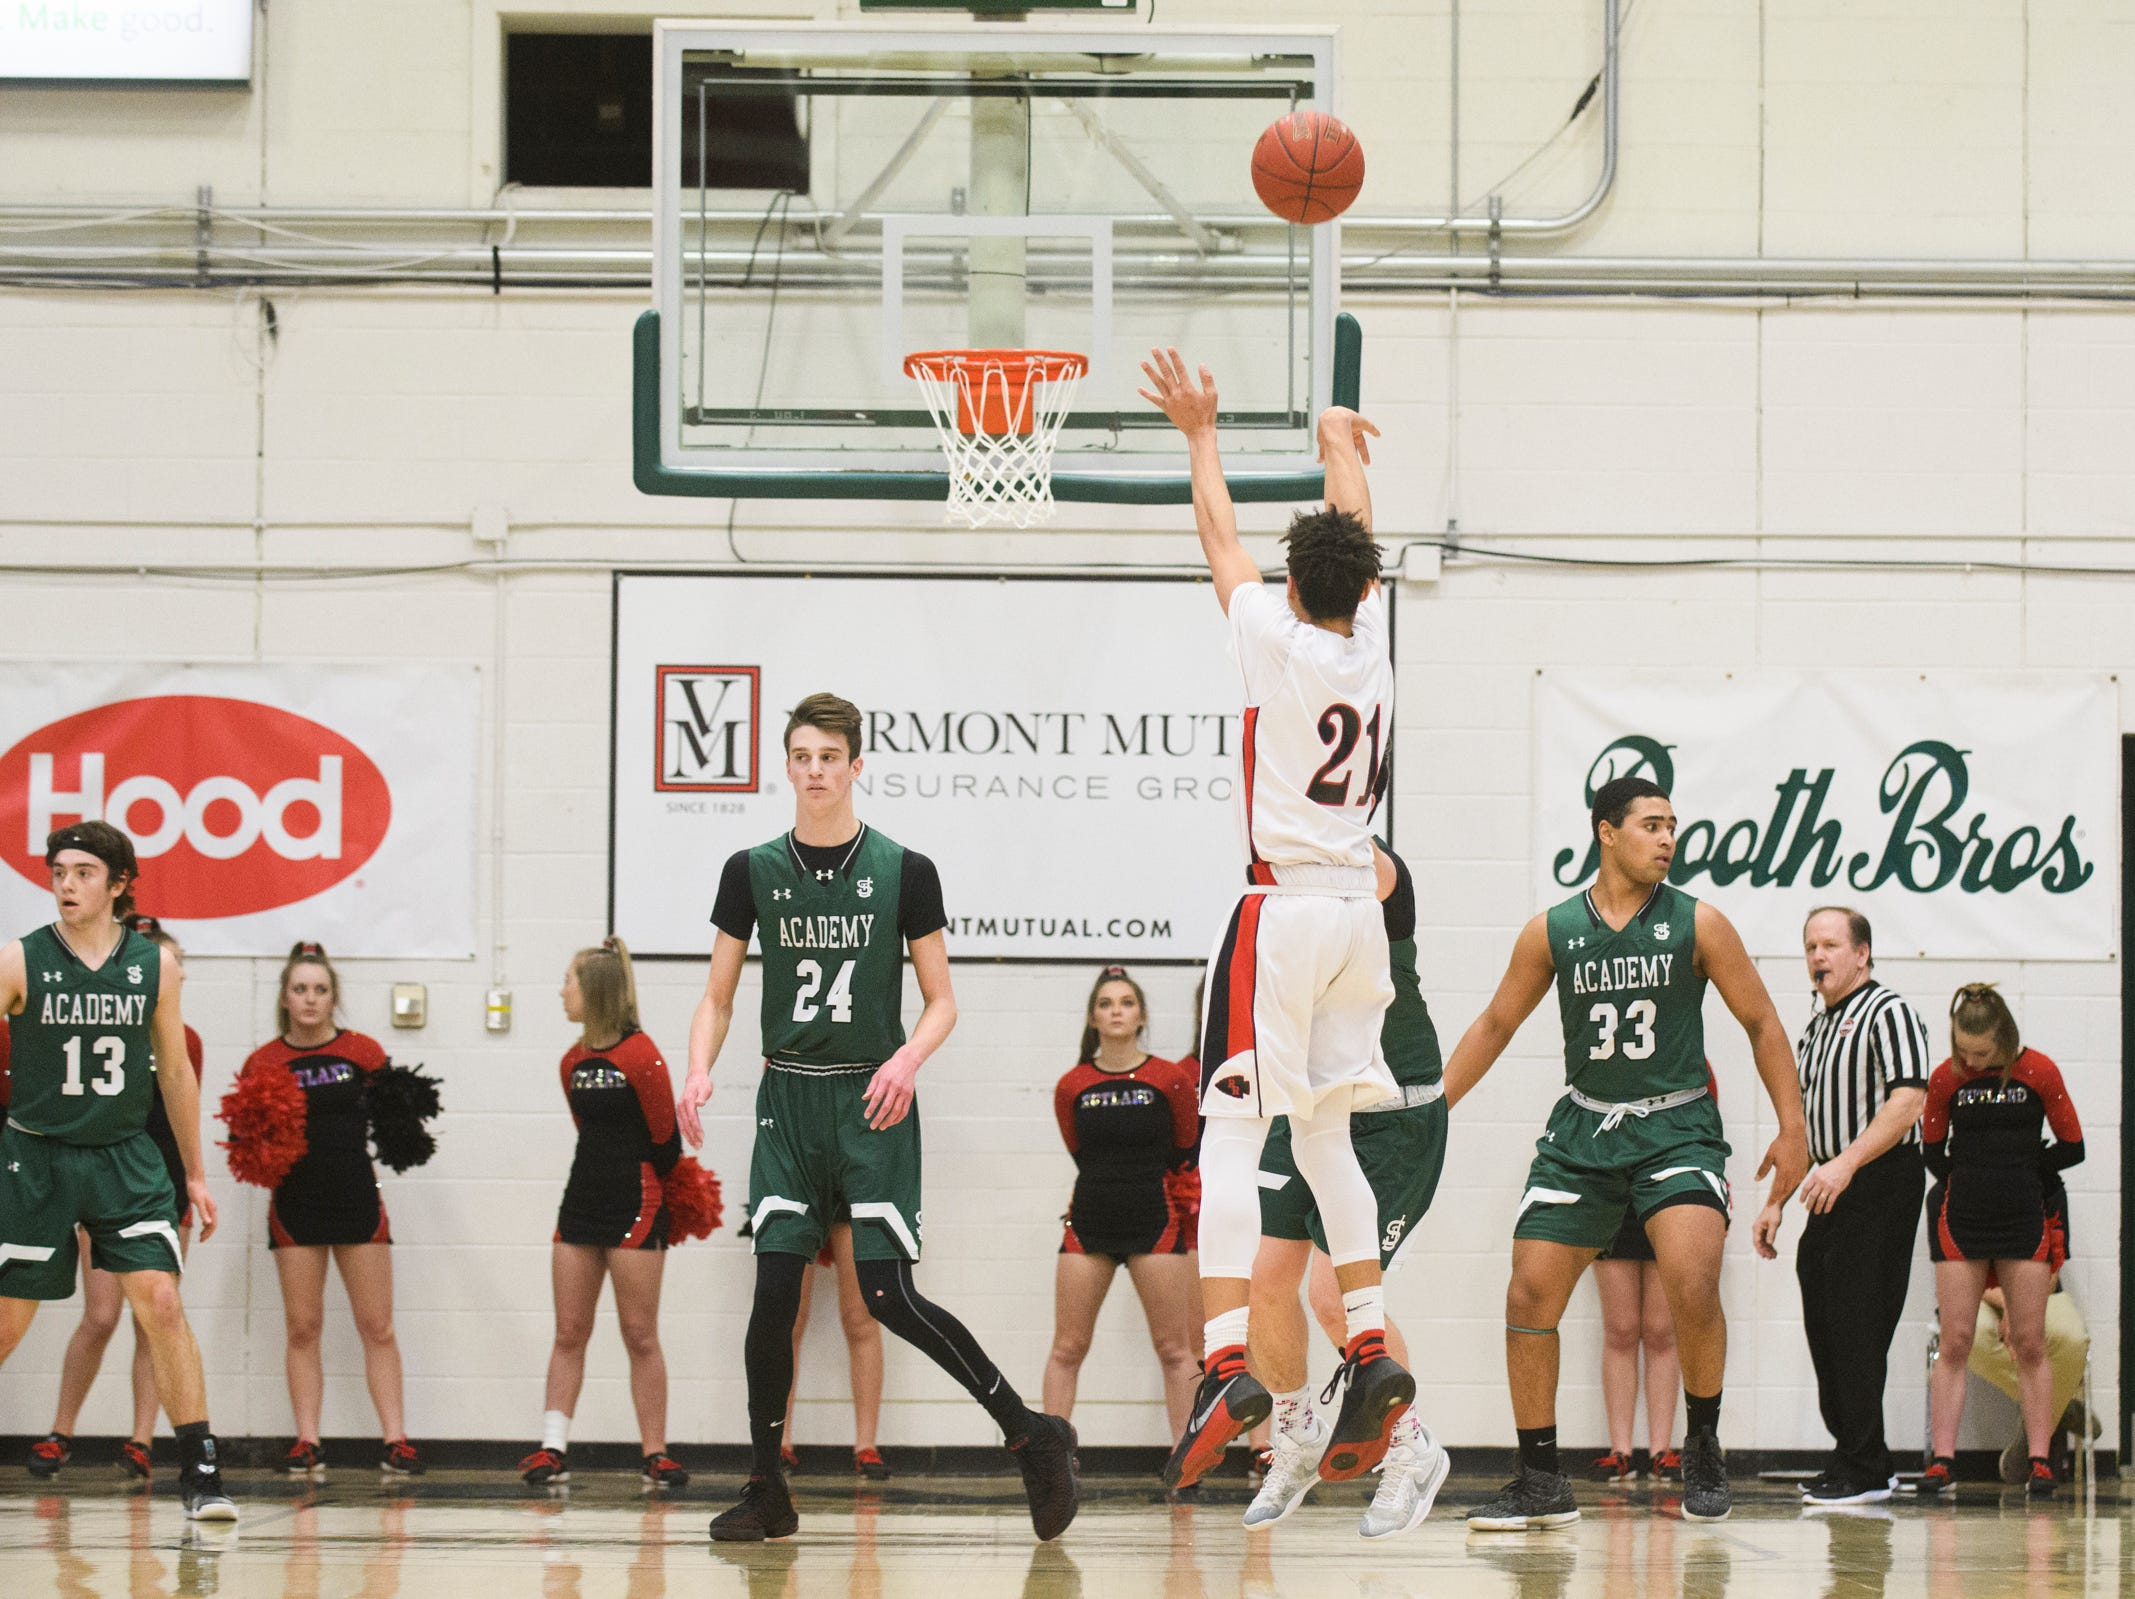 Rutland's Jamison Evans (21) shoots a three pointer during the DI boys basketball championship game between the St. Johnsbury Hilltoppers and the Rutland Raiders at Patrick Gym on Sunday afternoon March 17, 2019 in Burlington, Vermont.